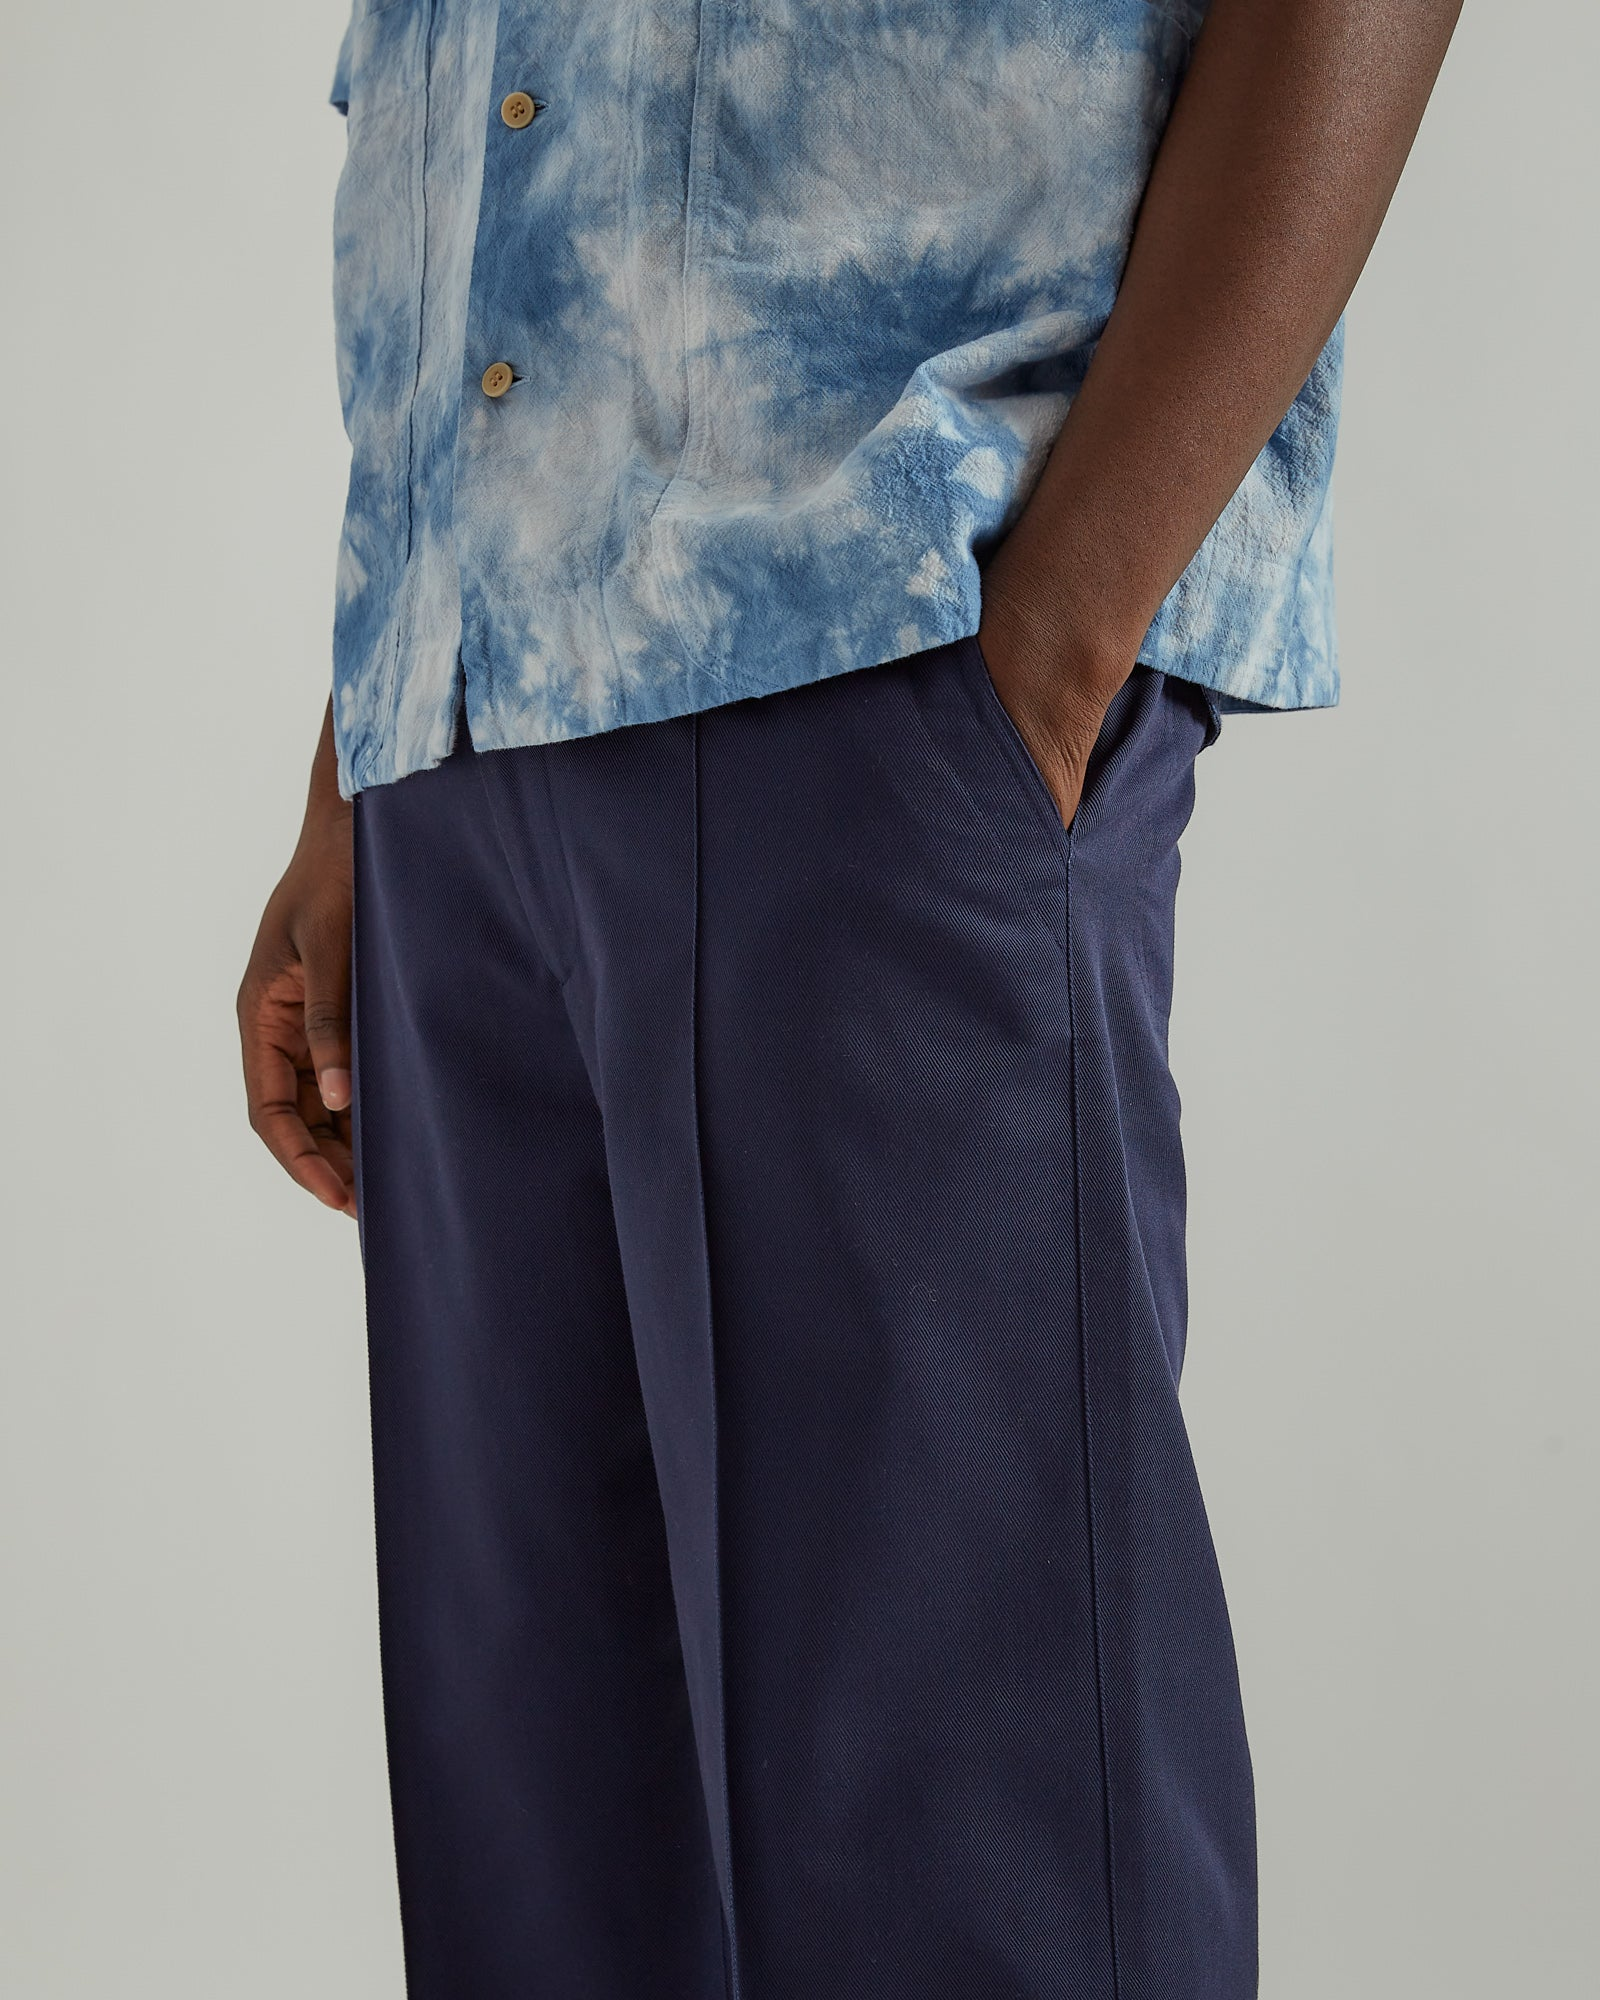 70's Trousers in Navy